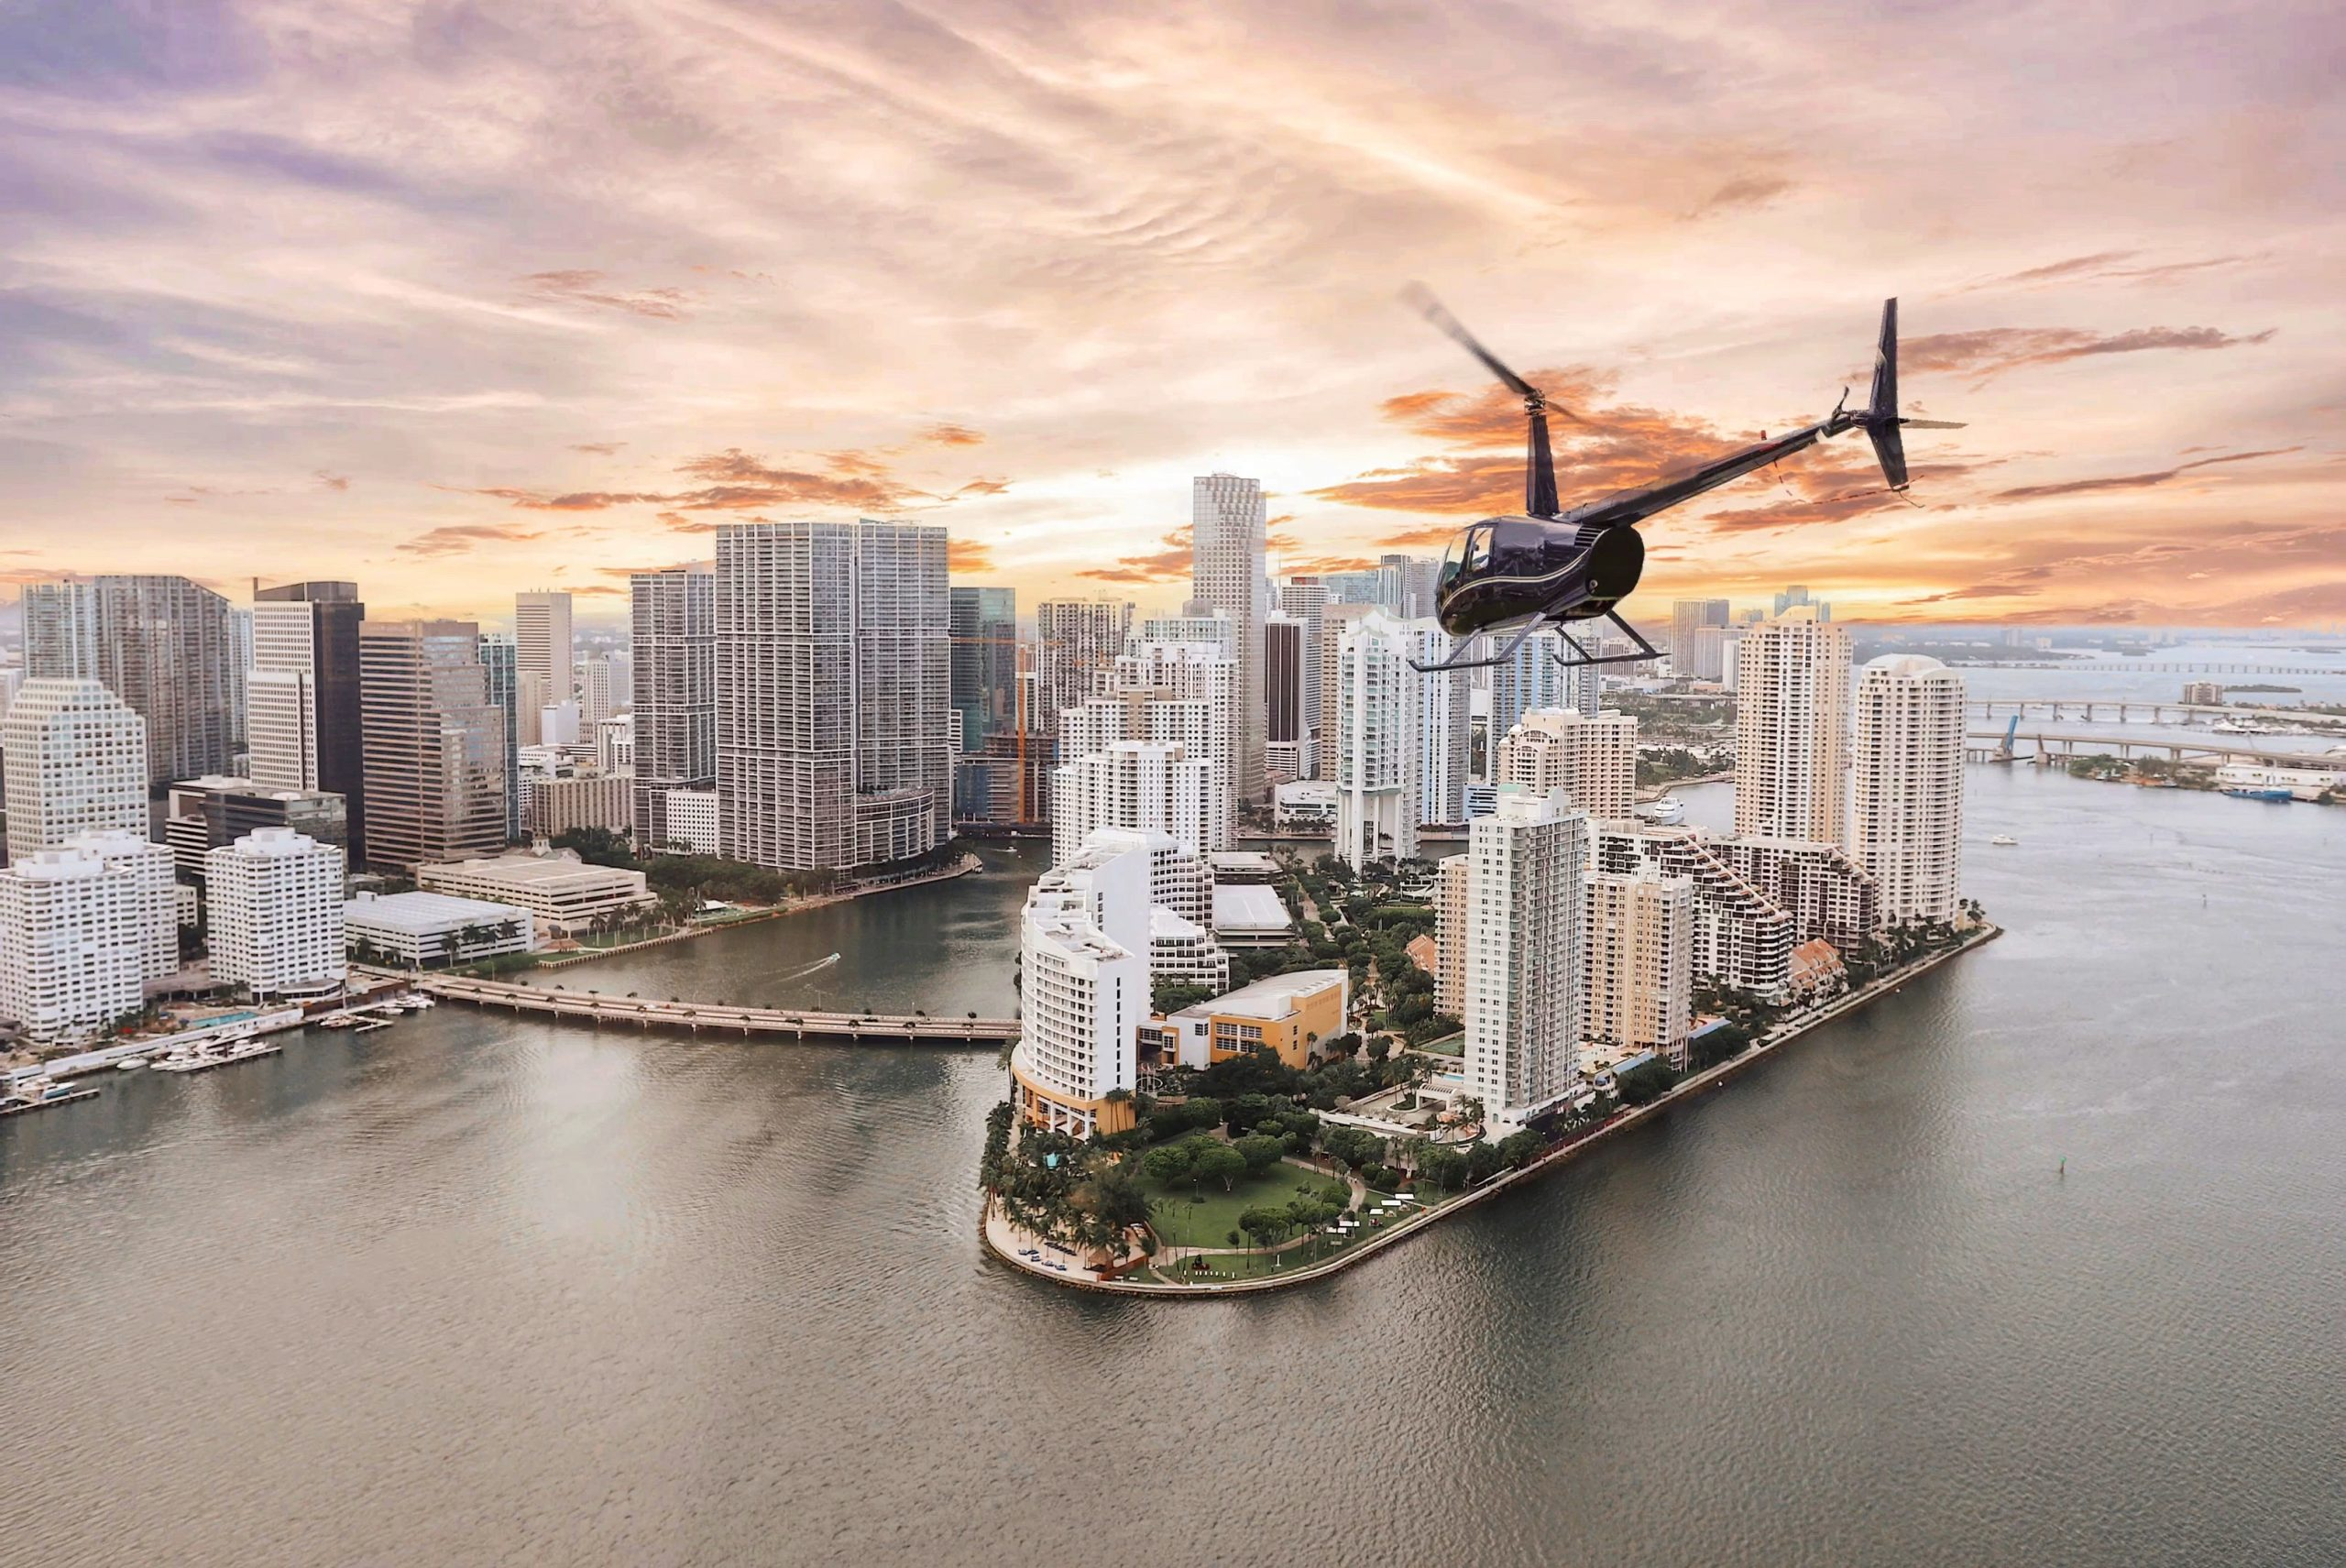 Sunset Helicopter Tour Miami